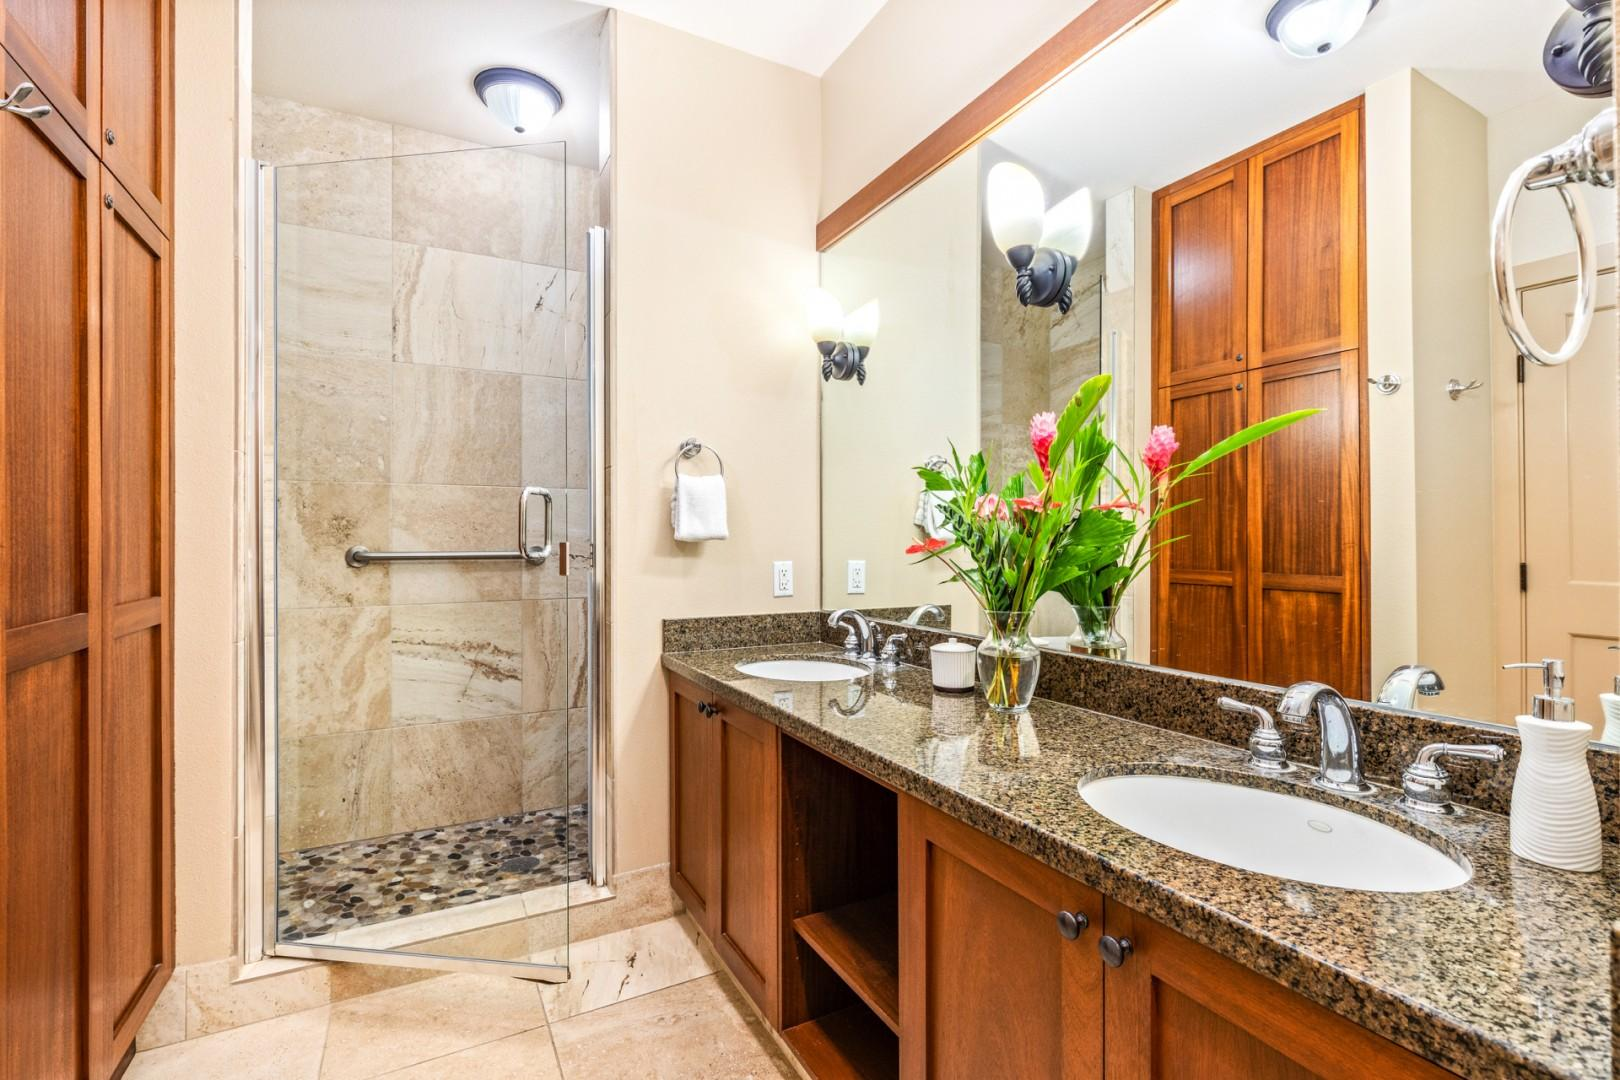 Master bath with dual sinks, walk-in shower, and W/C area with supportive grab bar handles.